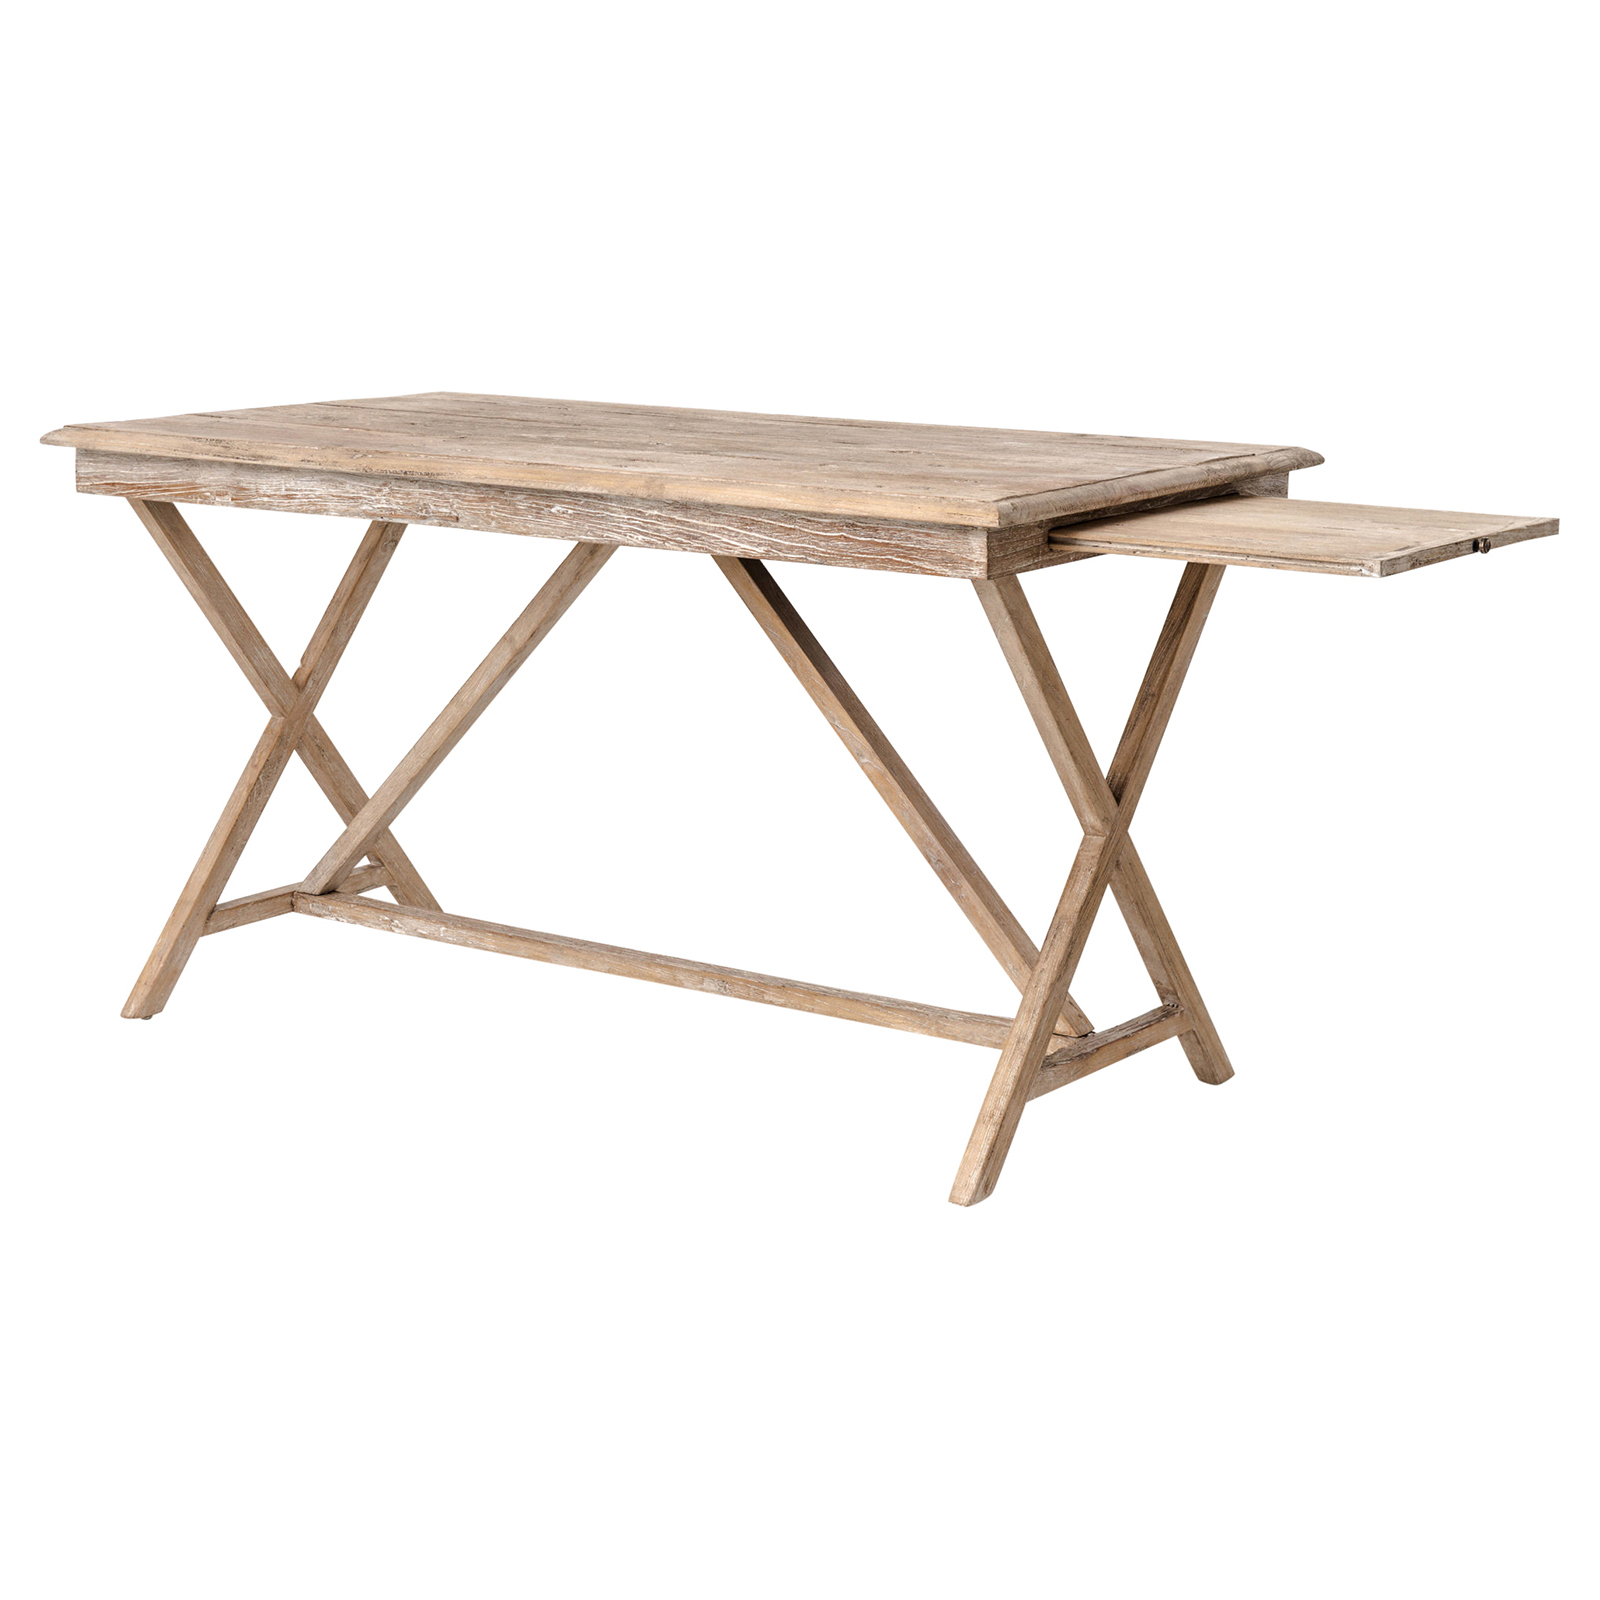 Cyril French Country Rustic White Wash Wood Desk